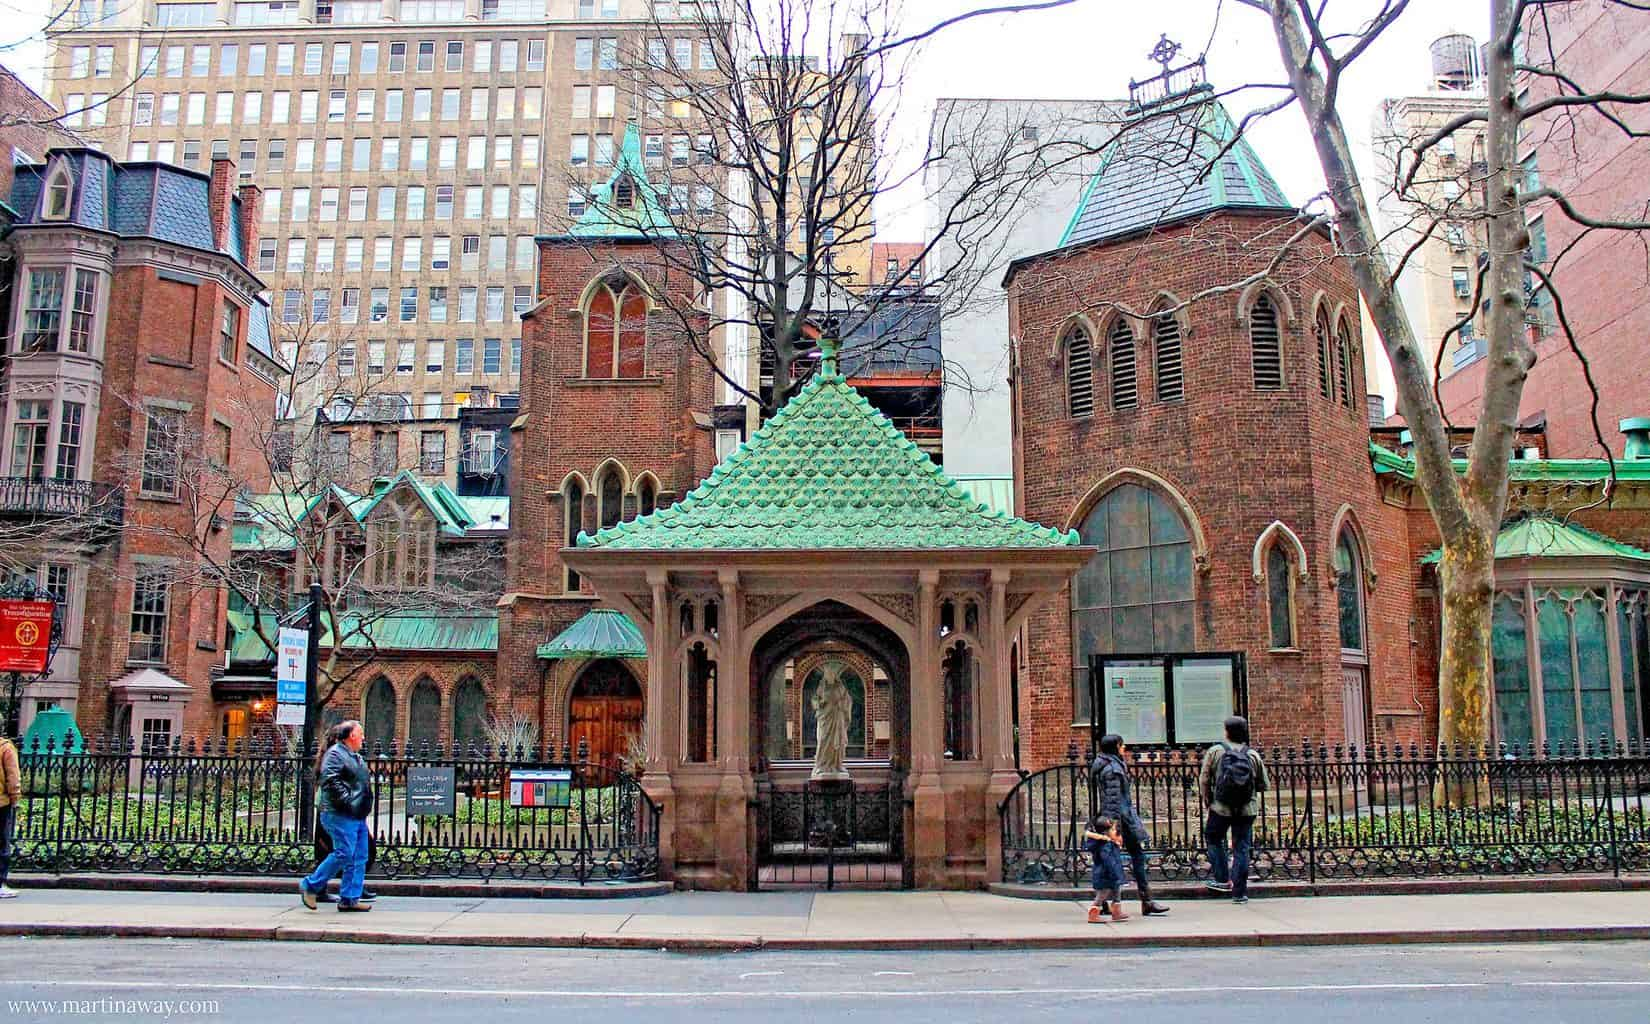 The charming, English country feel of the brick-walled, green-roofed, Church of the Transfiguration in New York City (image sourced from Flickr.com).